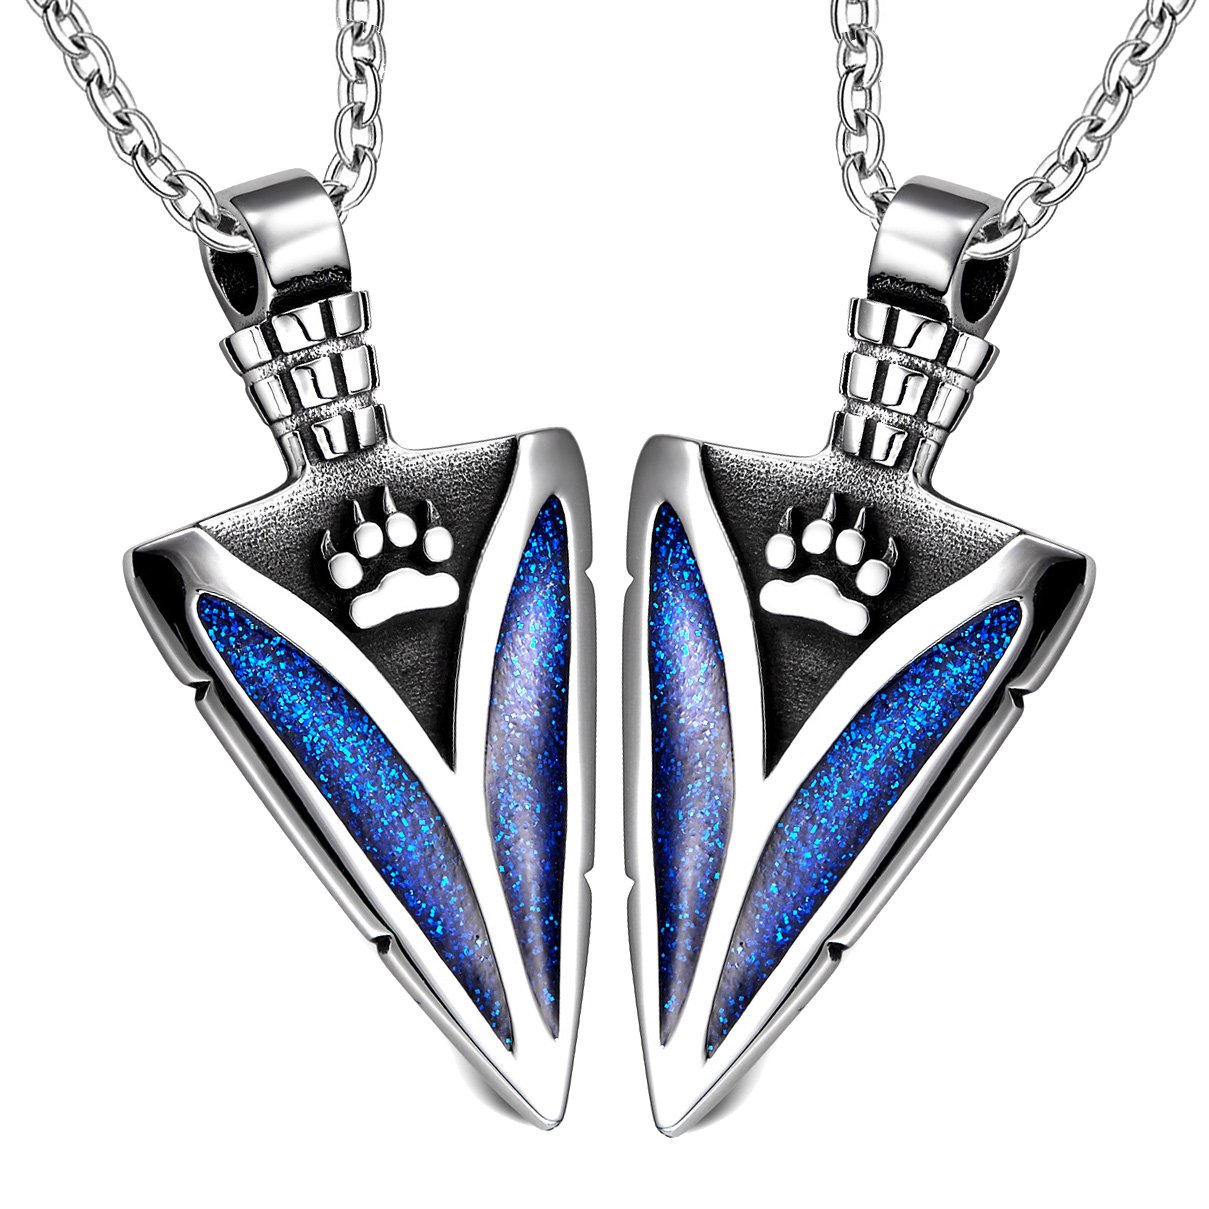 Arrowhead Wild Wolf Paw Love Couples Best Friends Set Protection Amulets Sparkling Royal Blue Necklaces